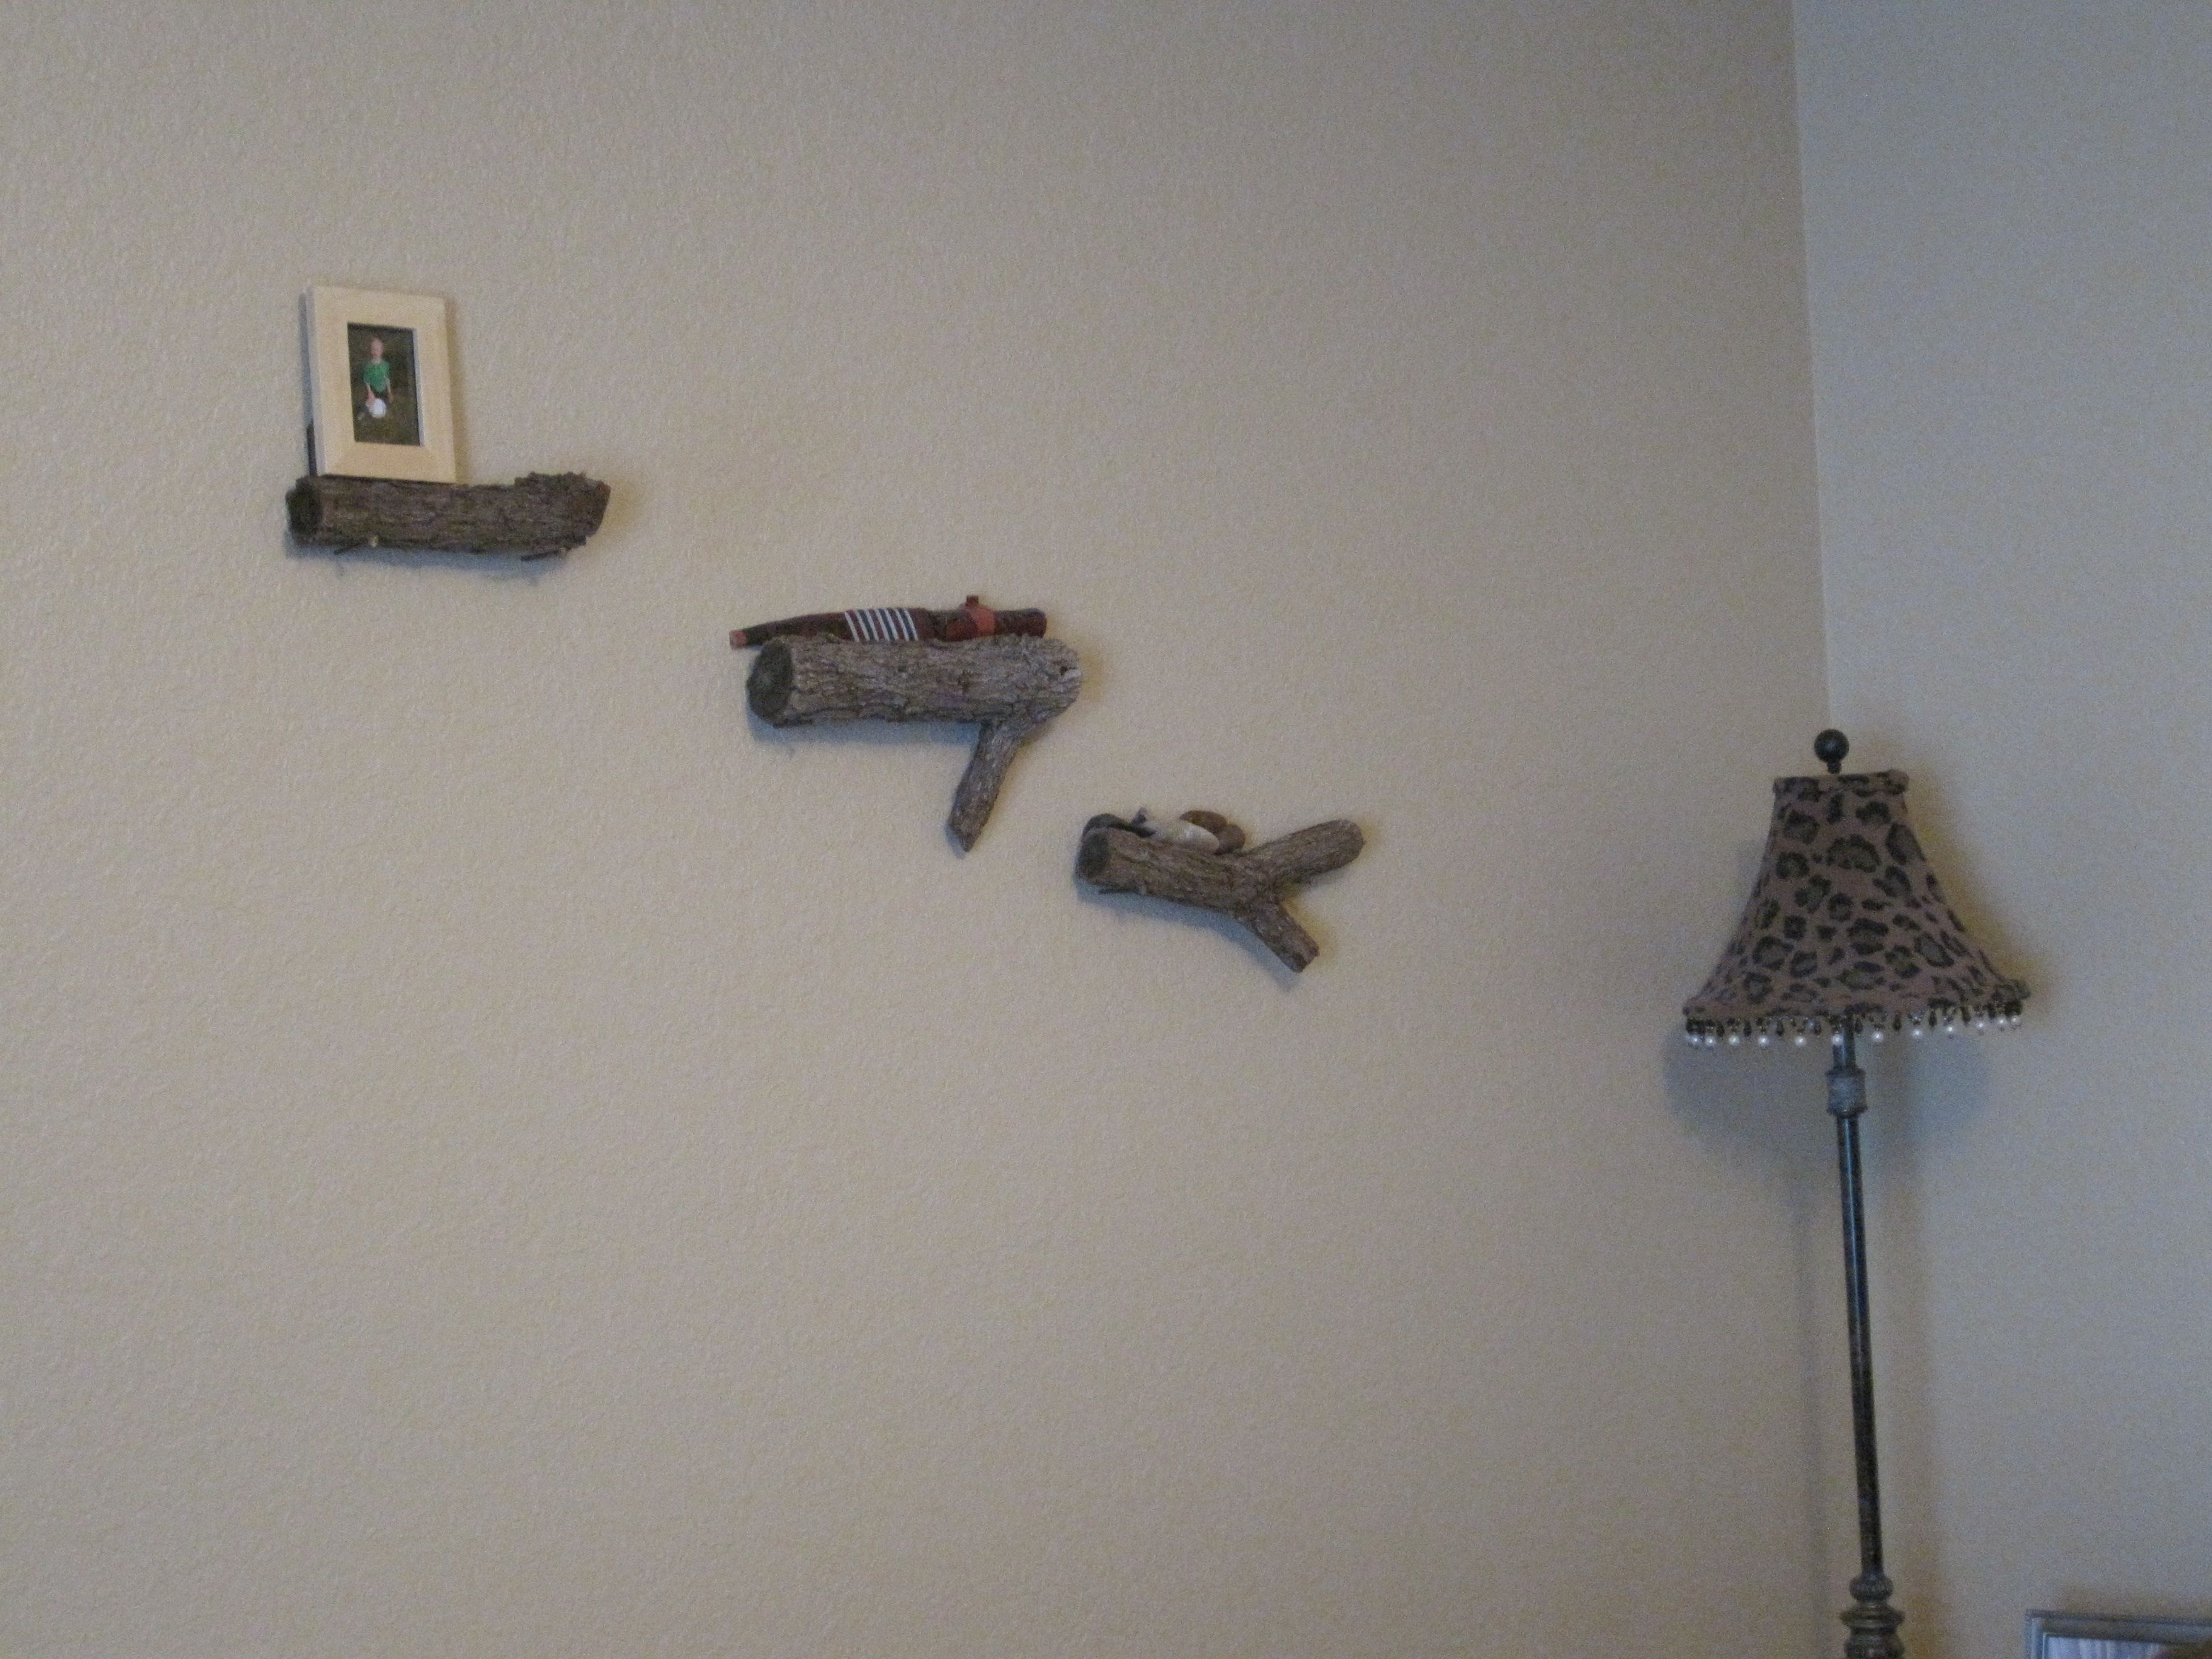 Superb img of small shelves made out of wood For the Home Pinterest with #495D82 color and 3648x2736 pixels